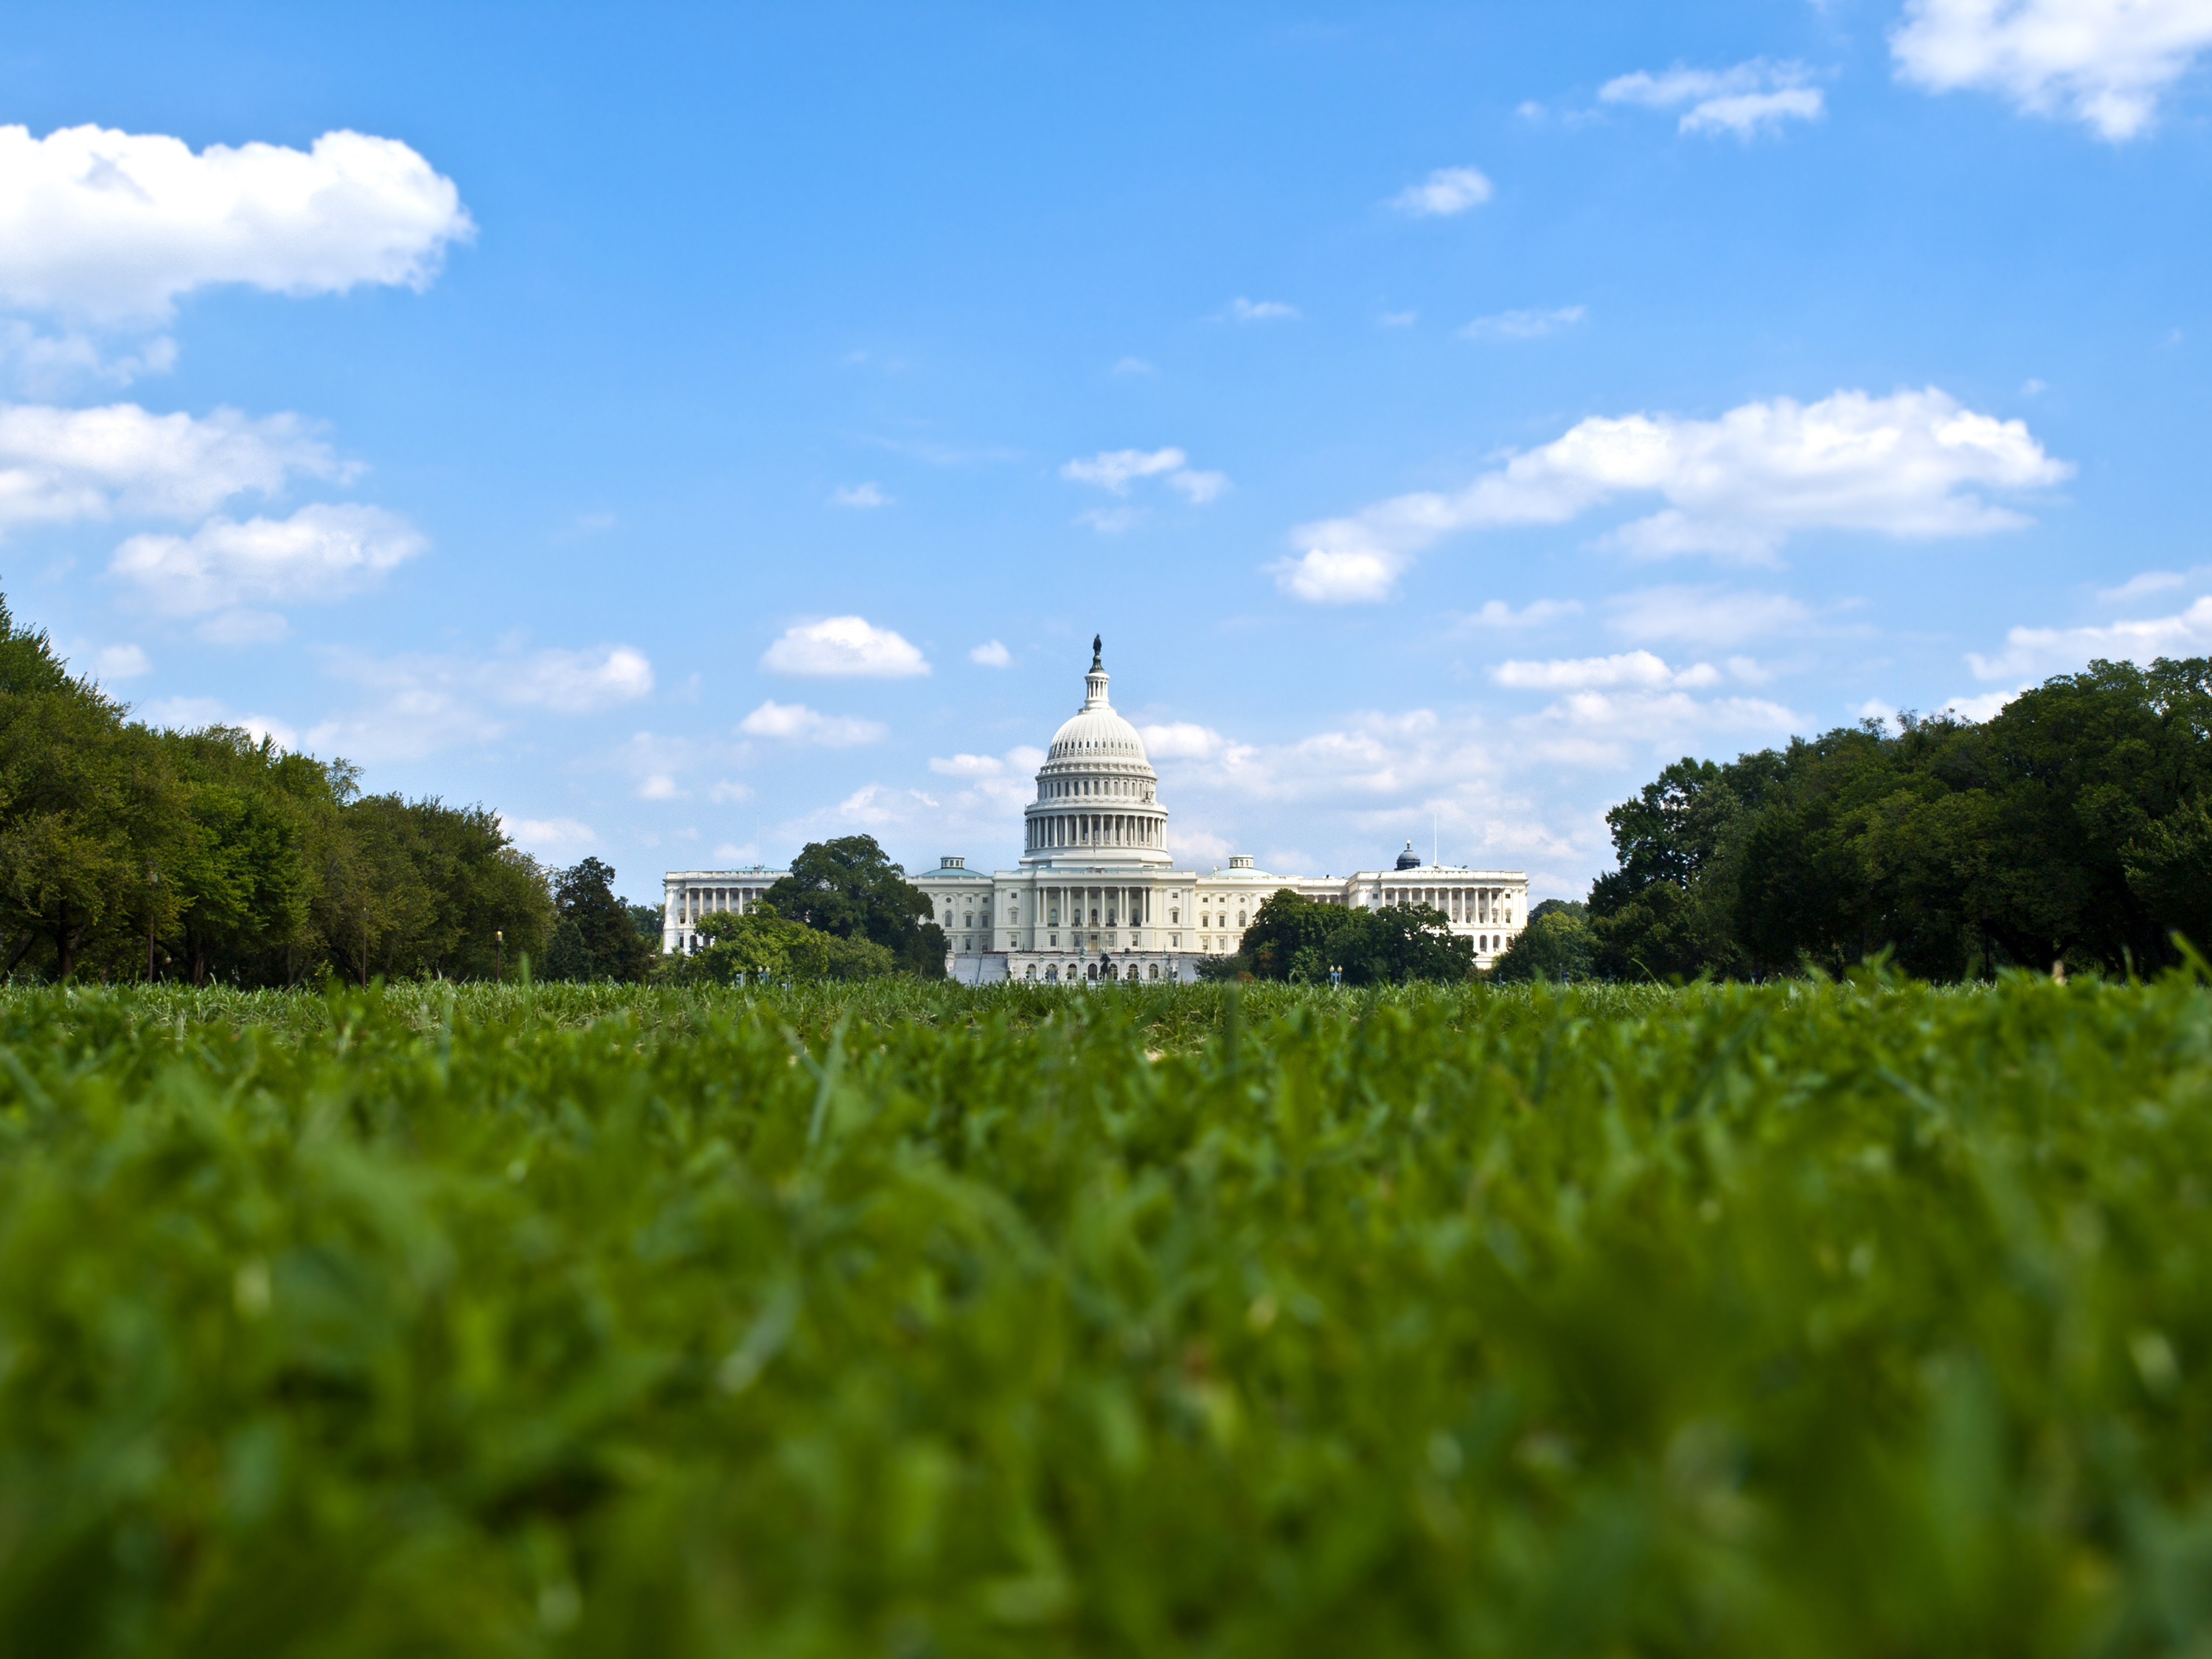 D.C. residents could soon meet regularly with Park Service officials: congressional delegate